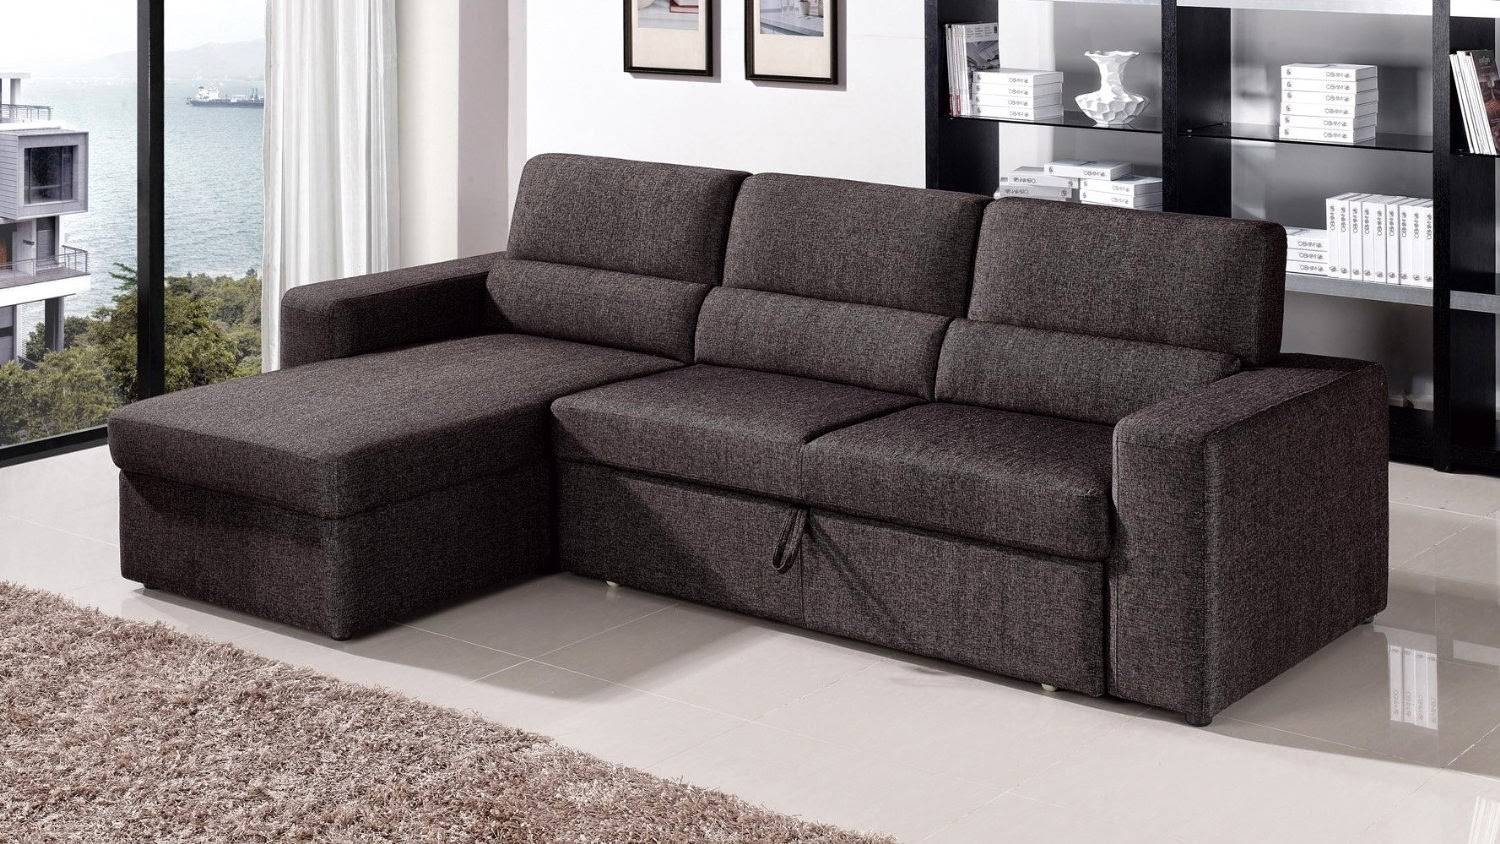 Elegant Sectional Sofa With Pull Out Sleeper 60 In Sofa Sleeper With Regard To Sectional Sofa San Diego (View 7 of 30)